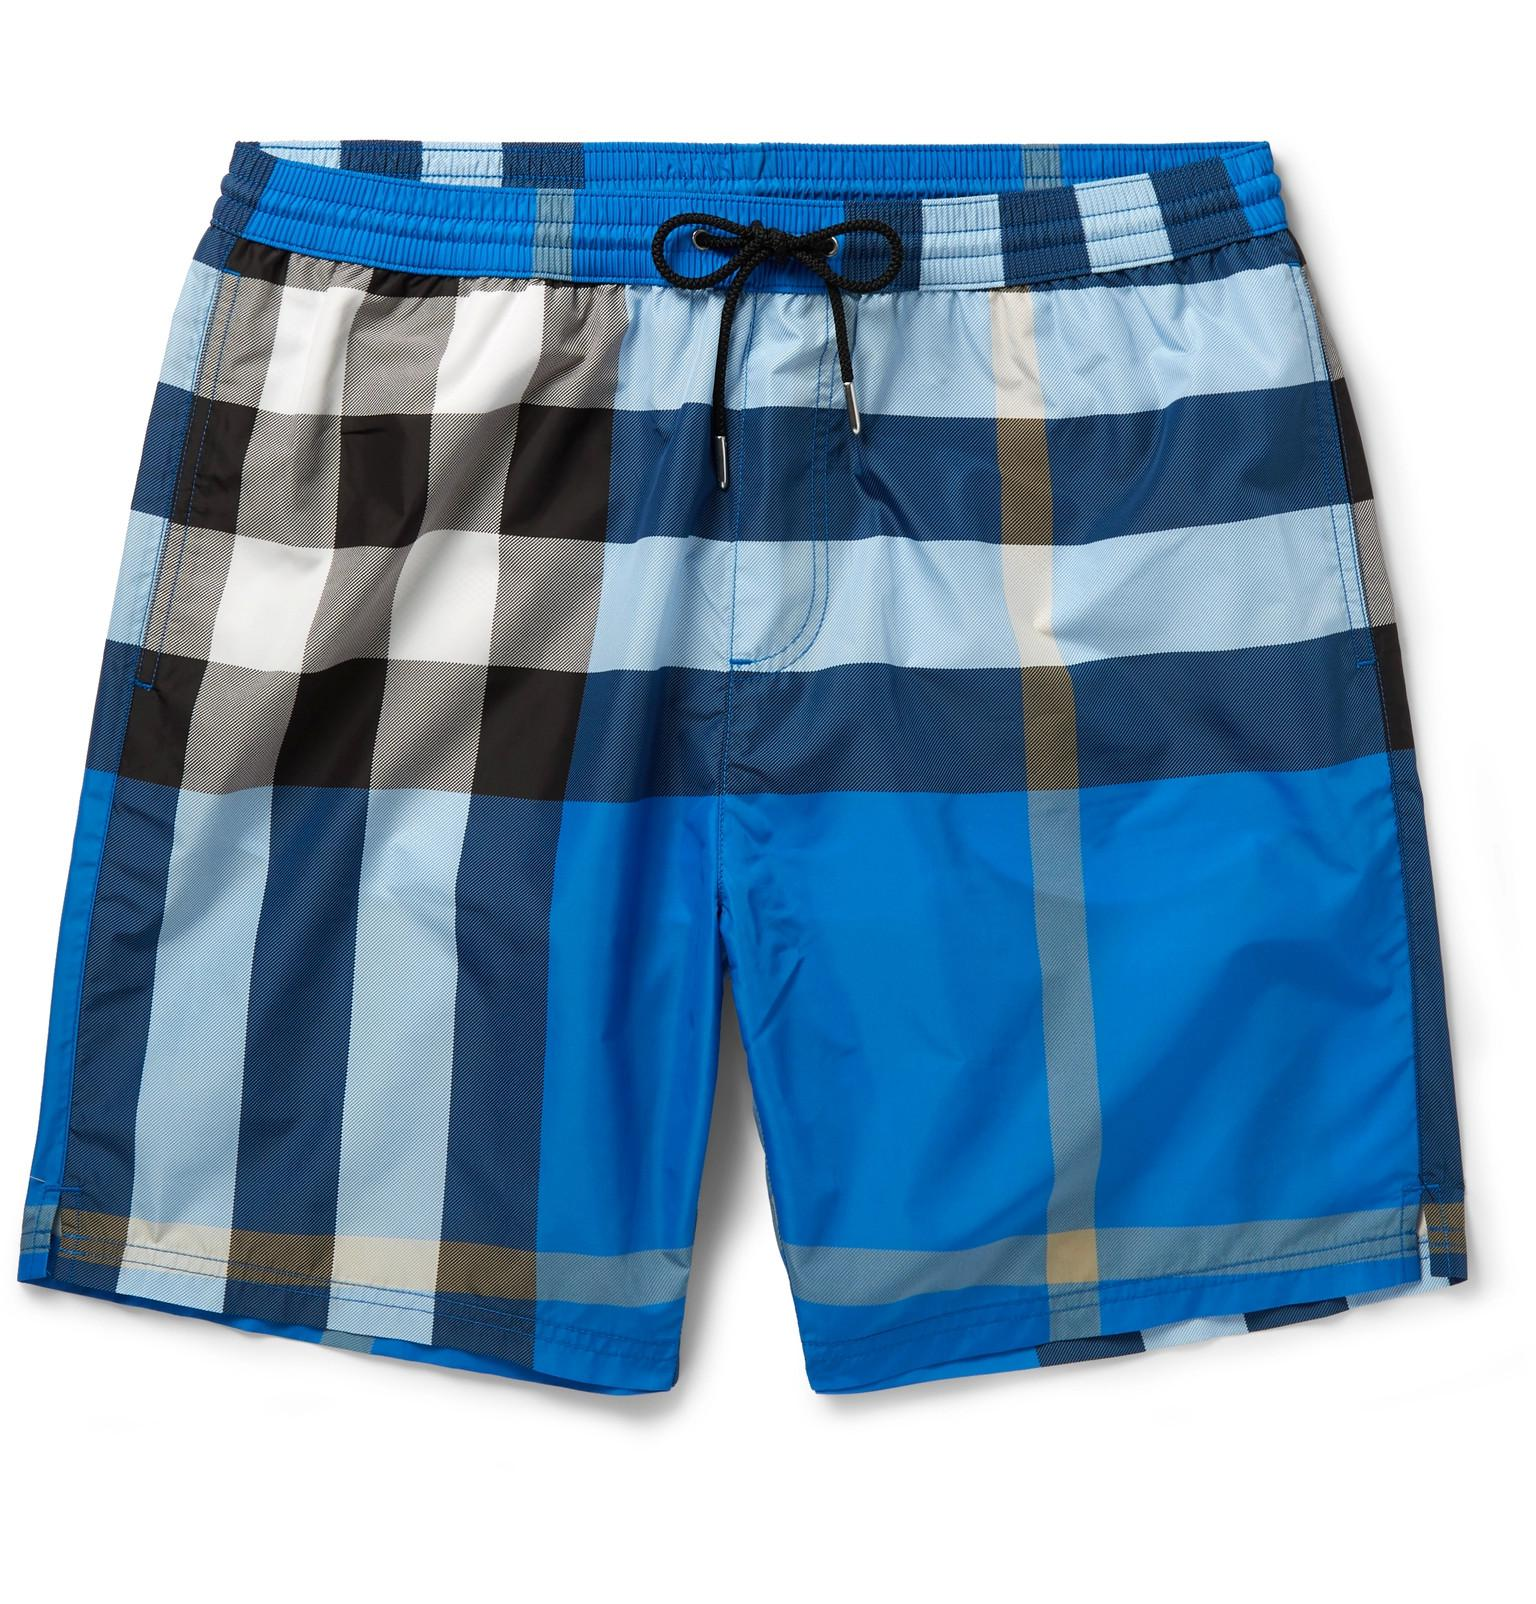 2c9b0ffcf9 Burberry Mid-length Checked Swim Shorts in Blue for Men - Lyst